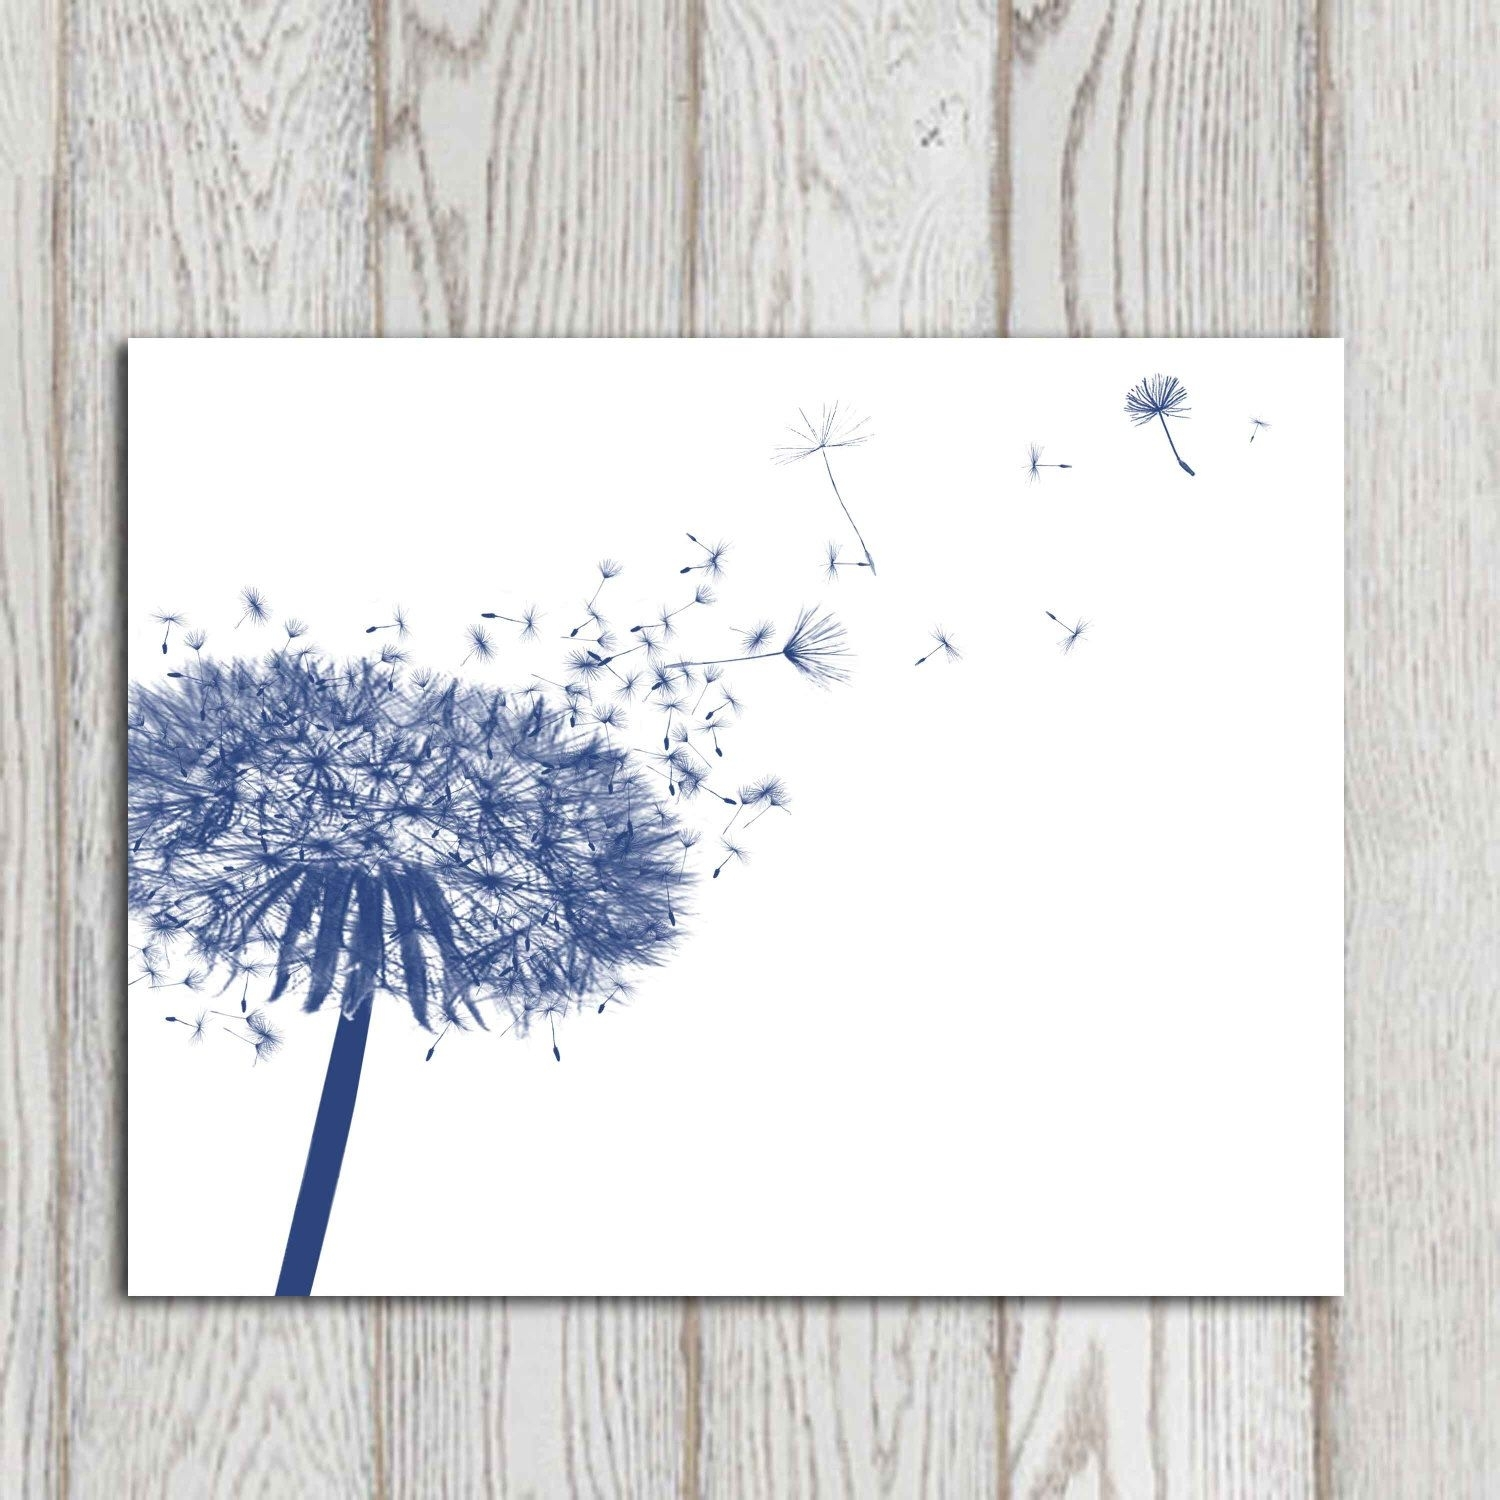 Nice Design Navy Blue Wall Art Best Of Dandelion Decor Print Home intended for Navy Blue Wall Art (Image 16 of 20)